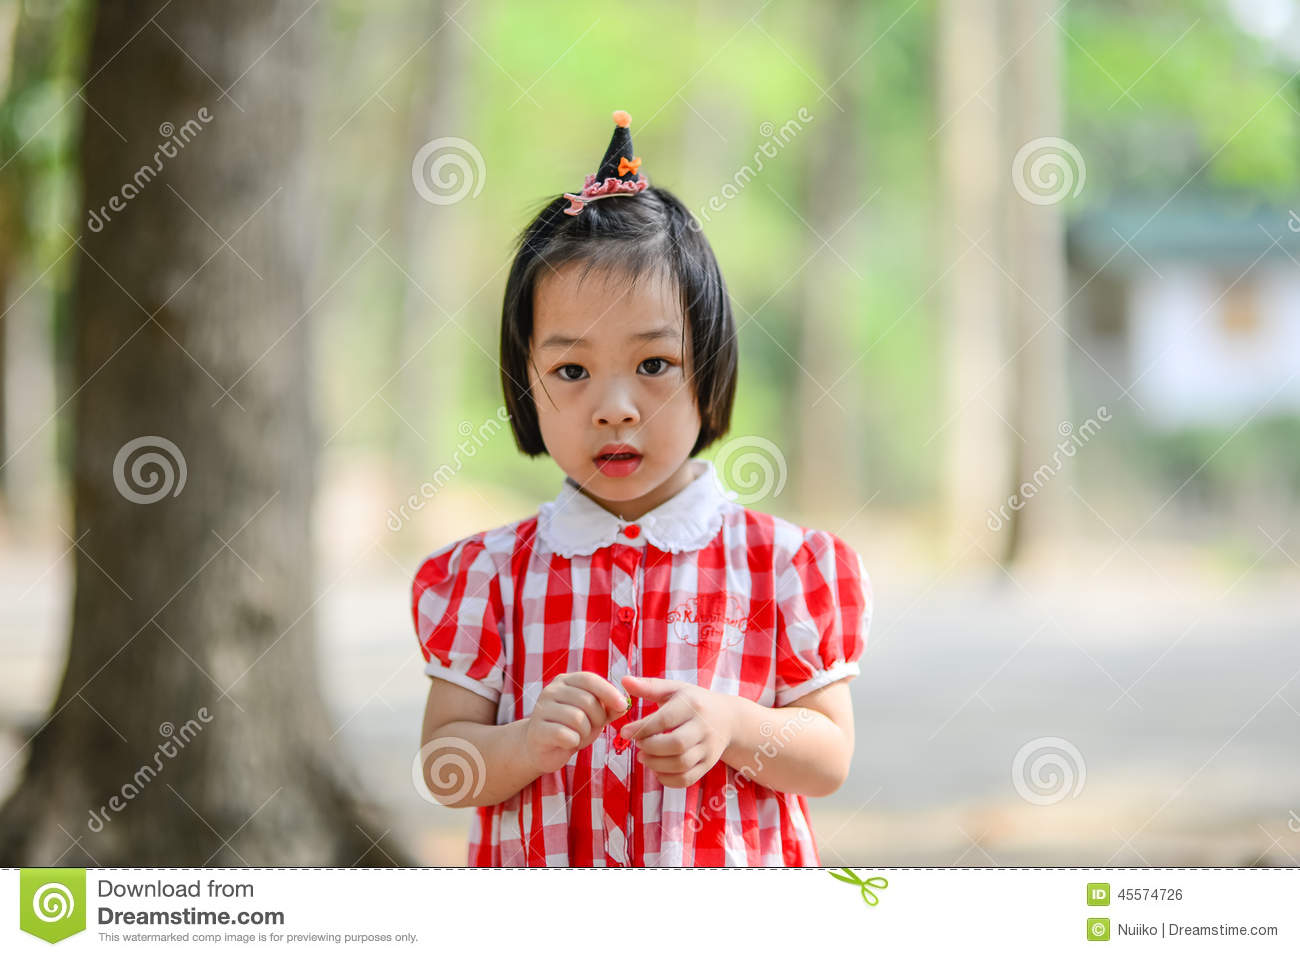 Shy Asian Girl In The Park Outdoor. Stock Photo - Image of ...